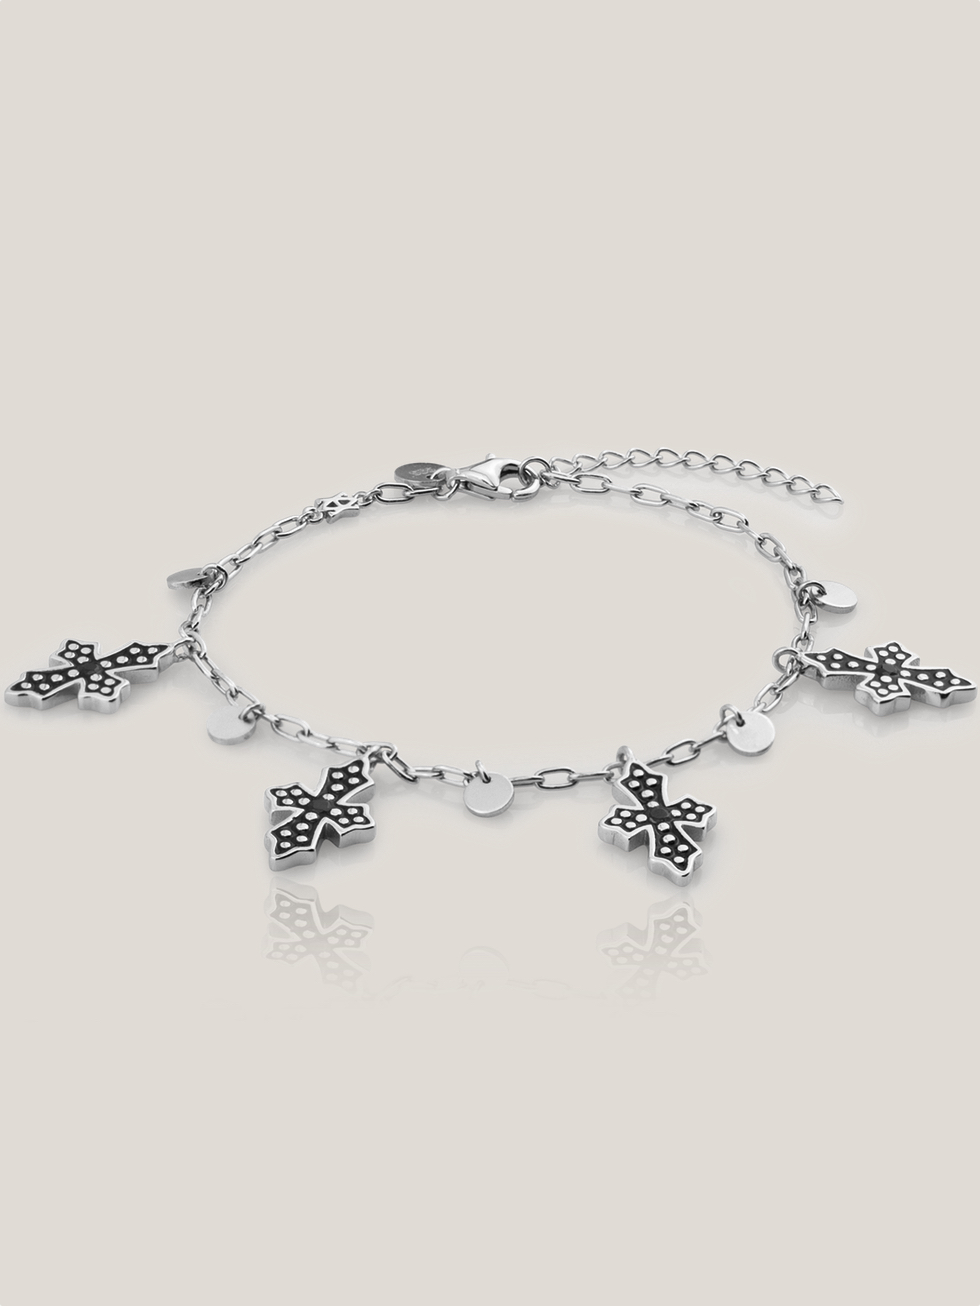 BLACK CROSS silver bracelet